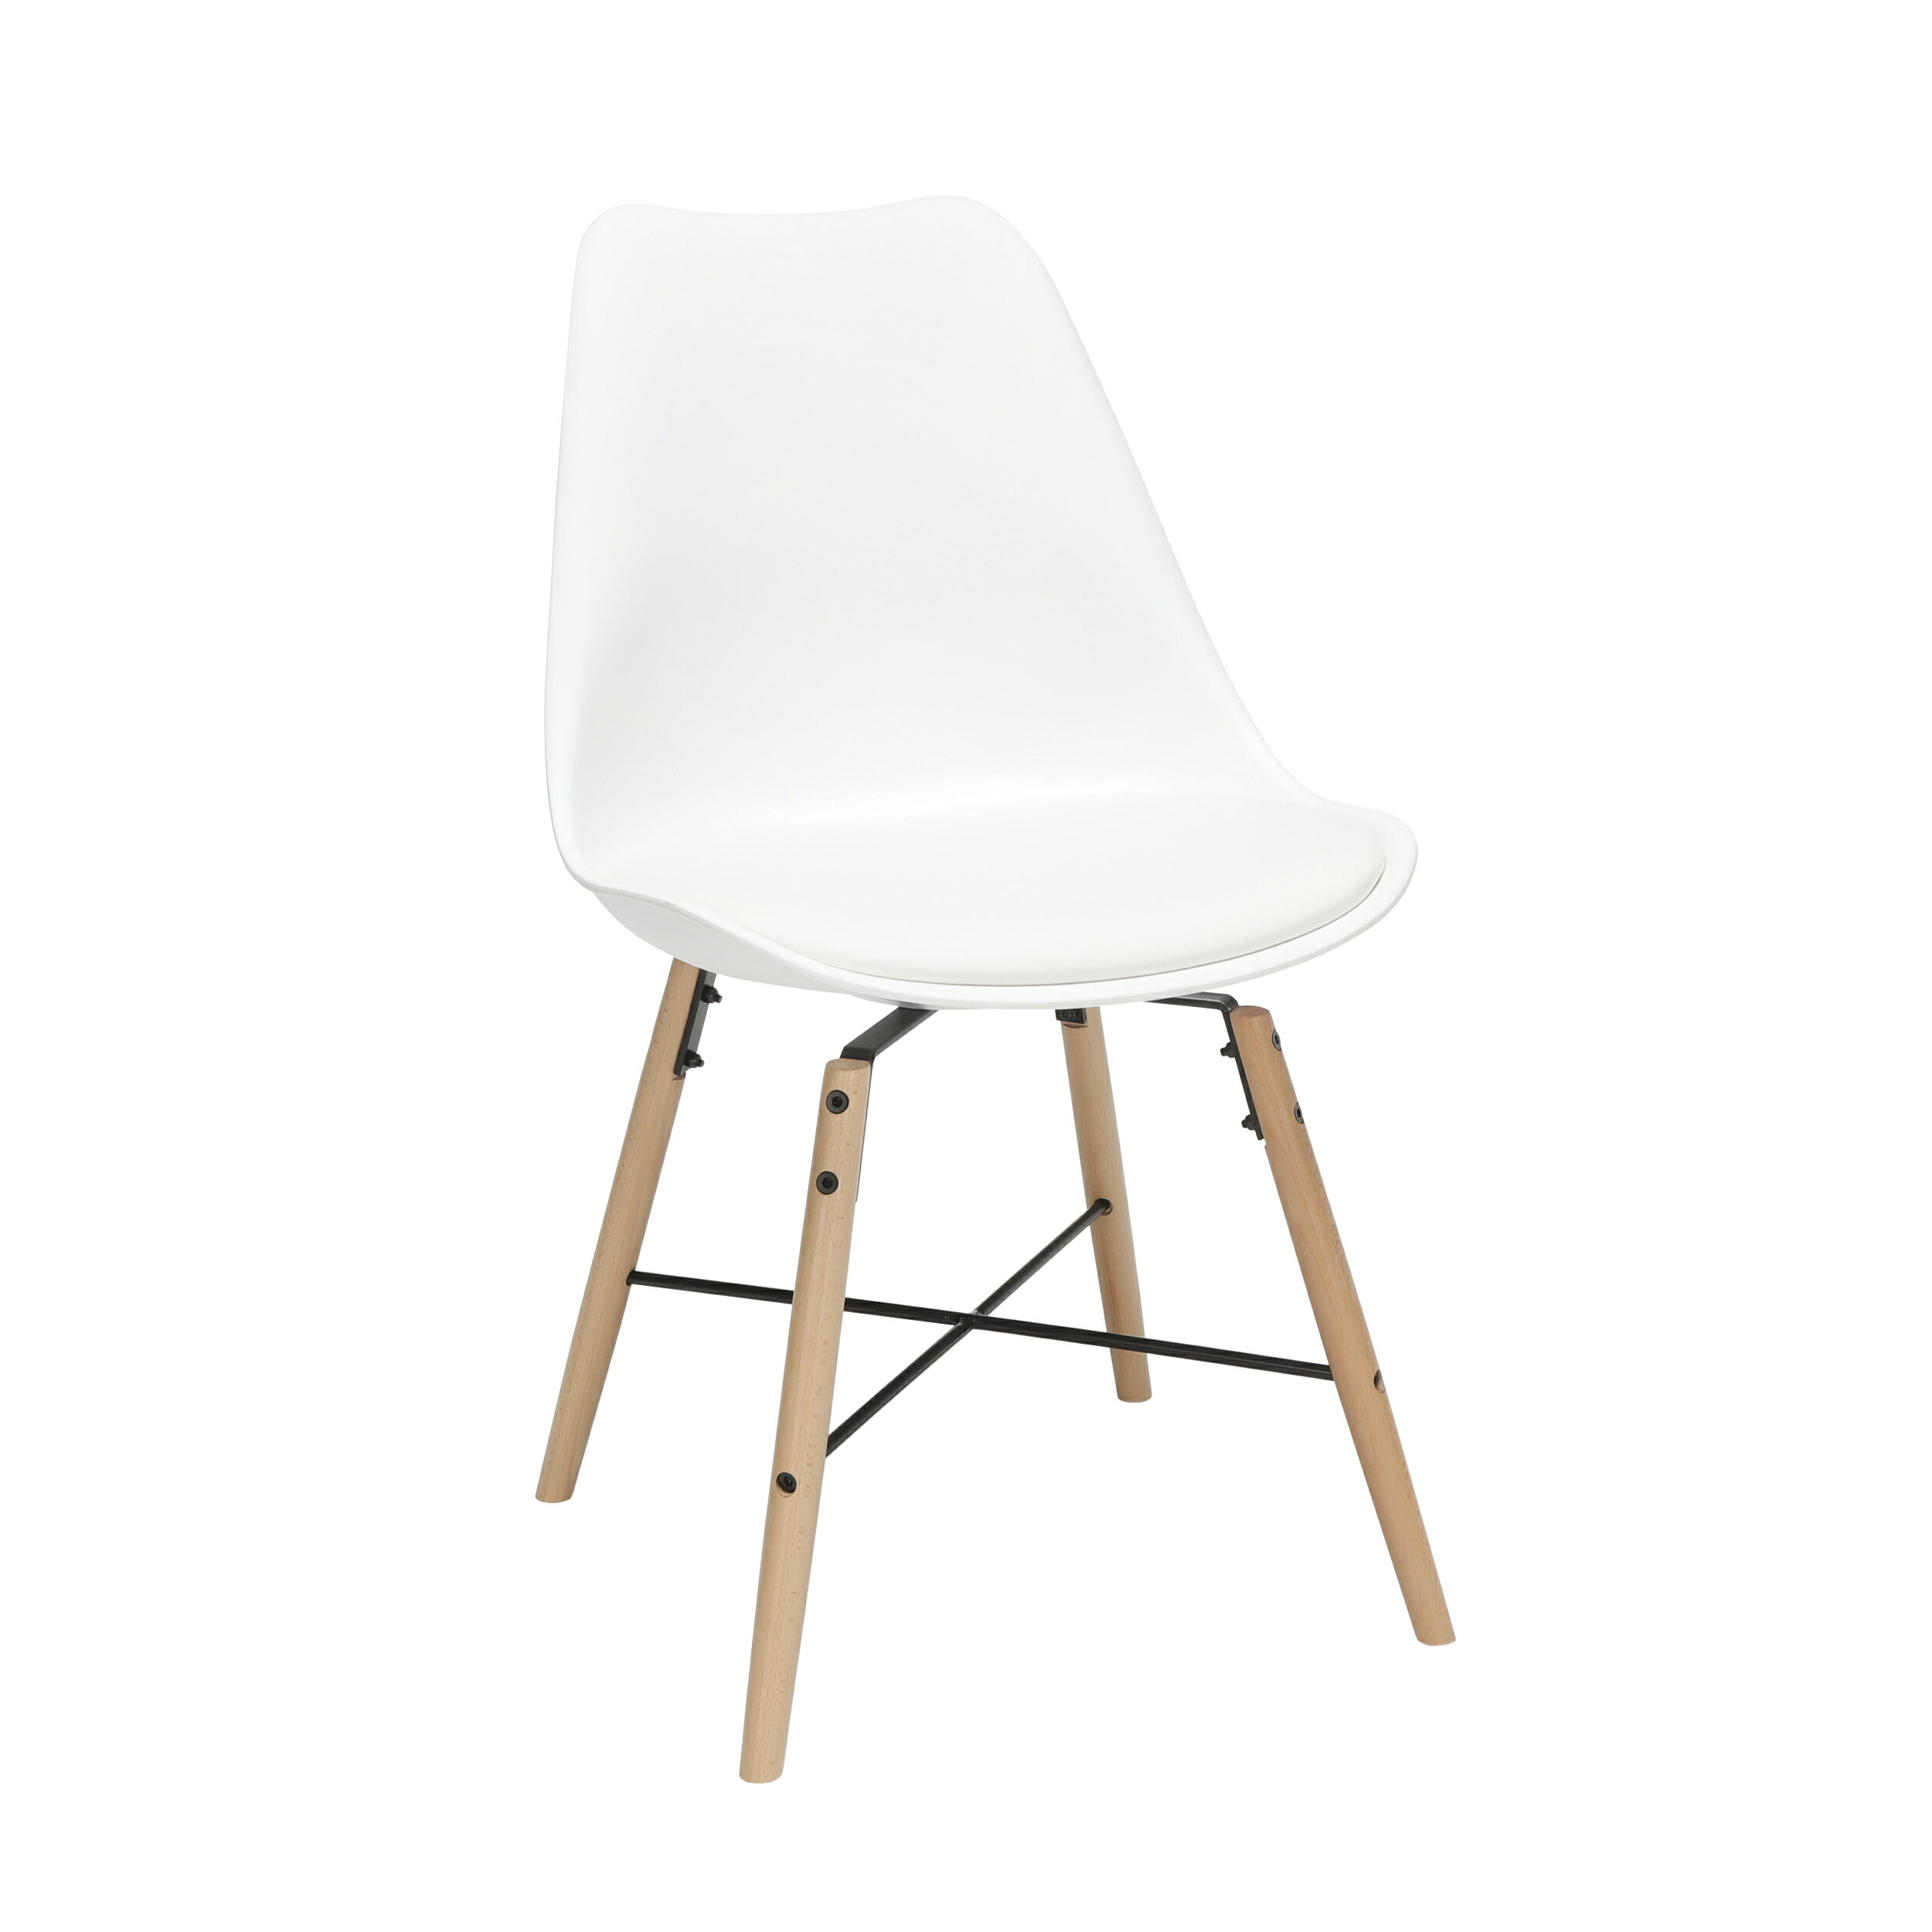 Awe Inspiring Ofm 161 Collection Mid Century Modern 4 Pack 18 Plastic Molded Dining Chairs With Vinyl Seat Cushion Beechwood Legs With Wire Accent In White Pabps2019 Chair Design Images Pabps2019Com